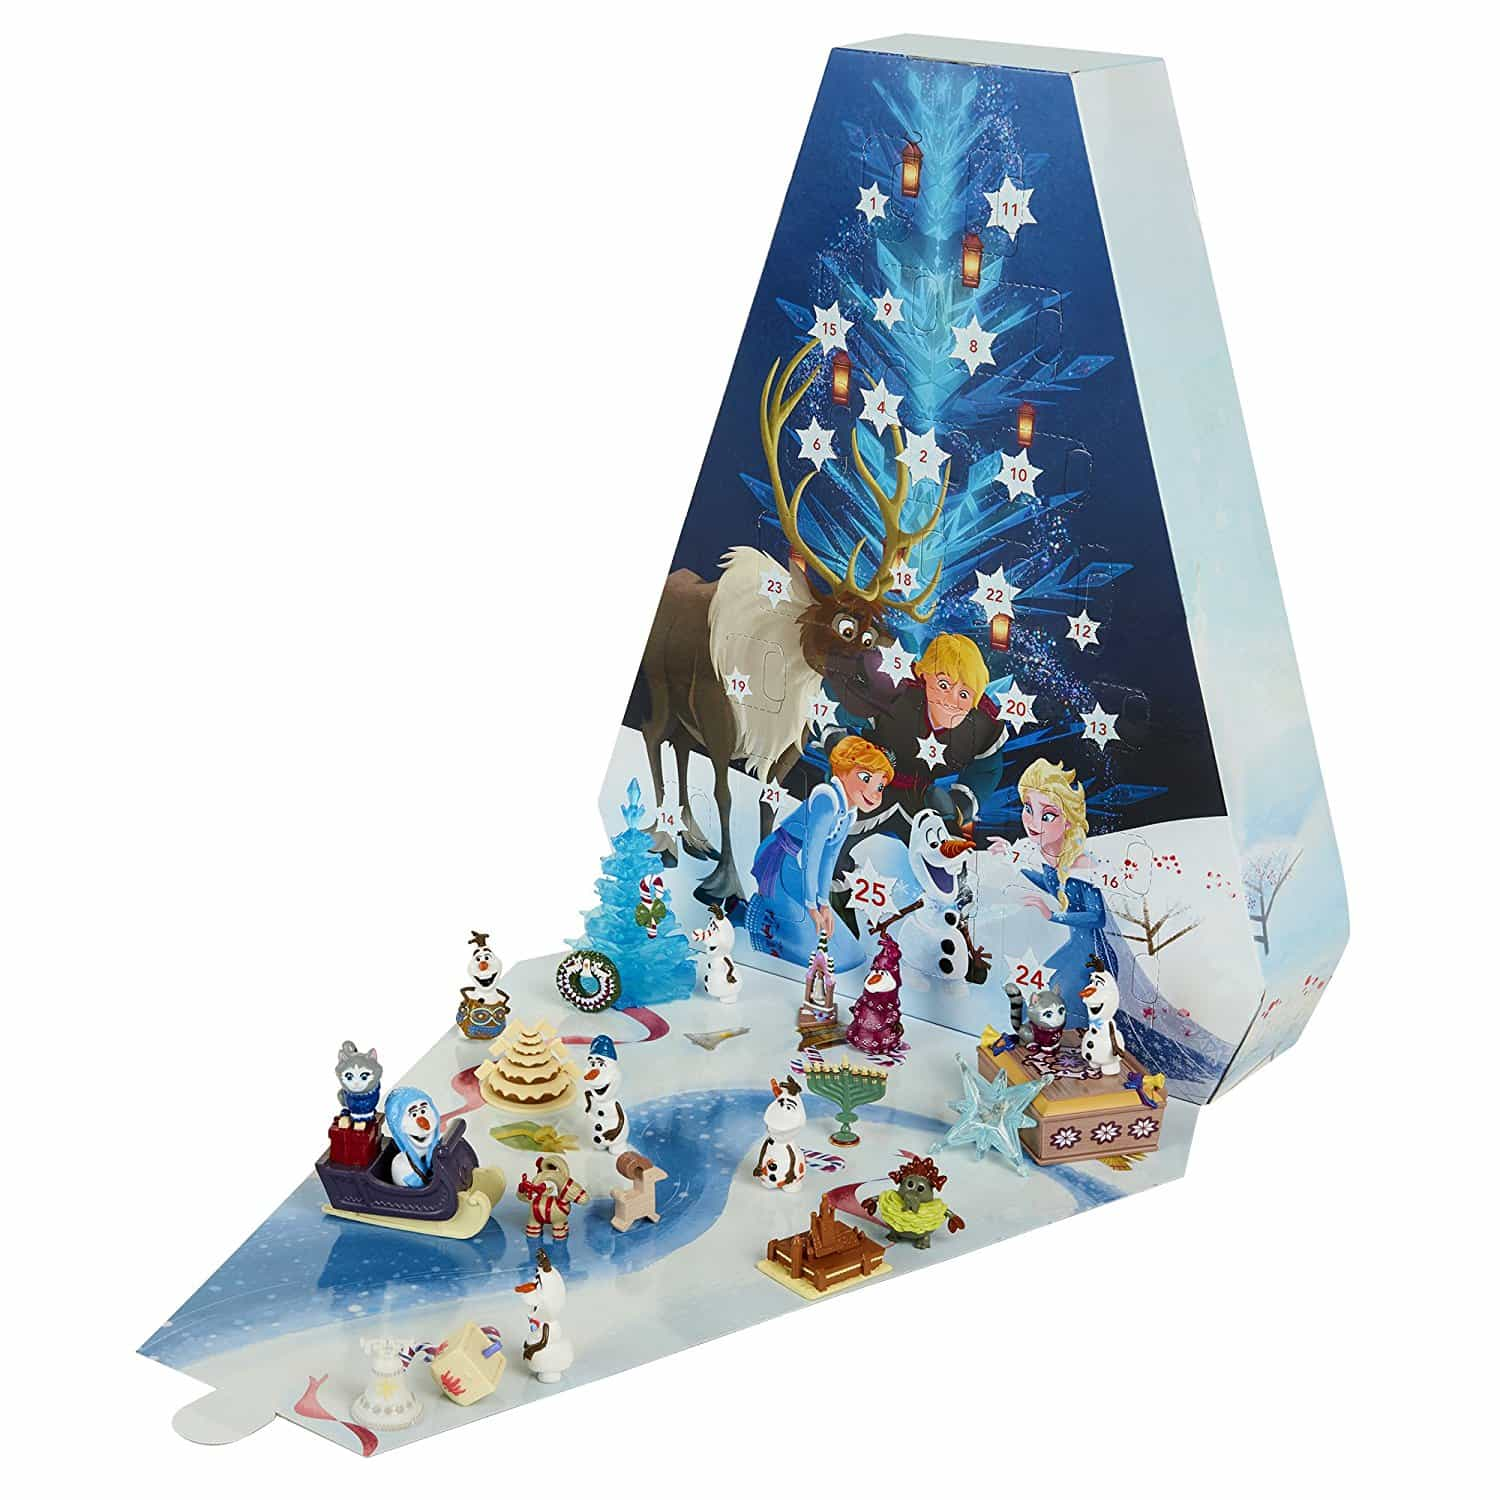 Anna Olaf Contemporary 1968 Now Disney Traditions Christmas Tree Decorations From Frozen Elsa Other Contemp Holiday Disney Collectibles Disneyana